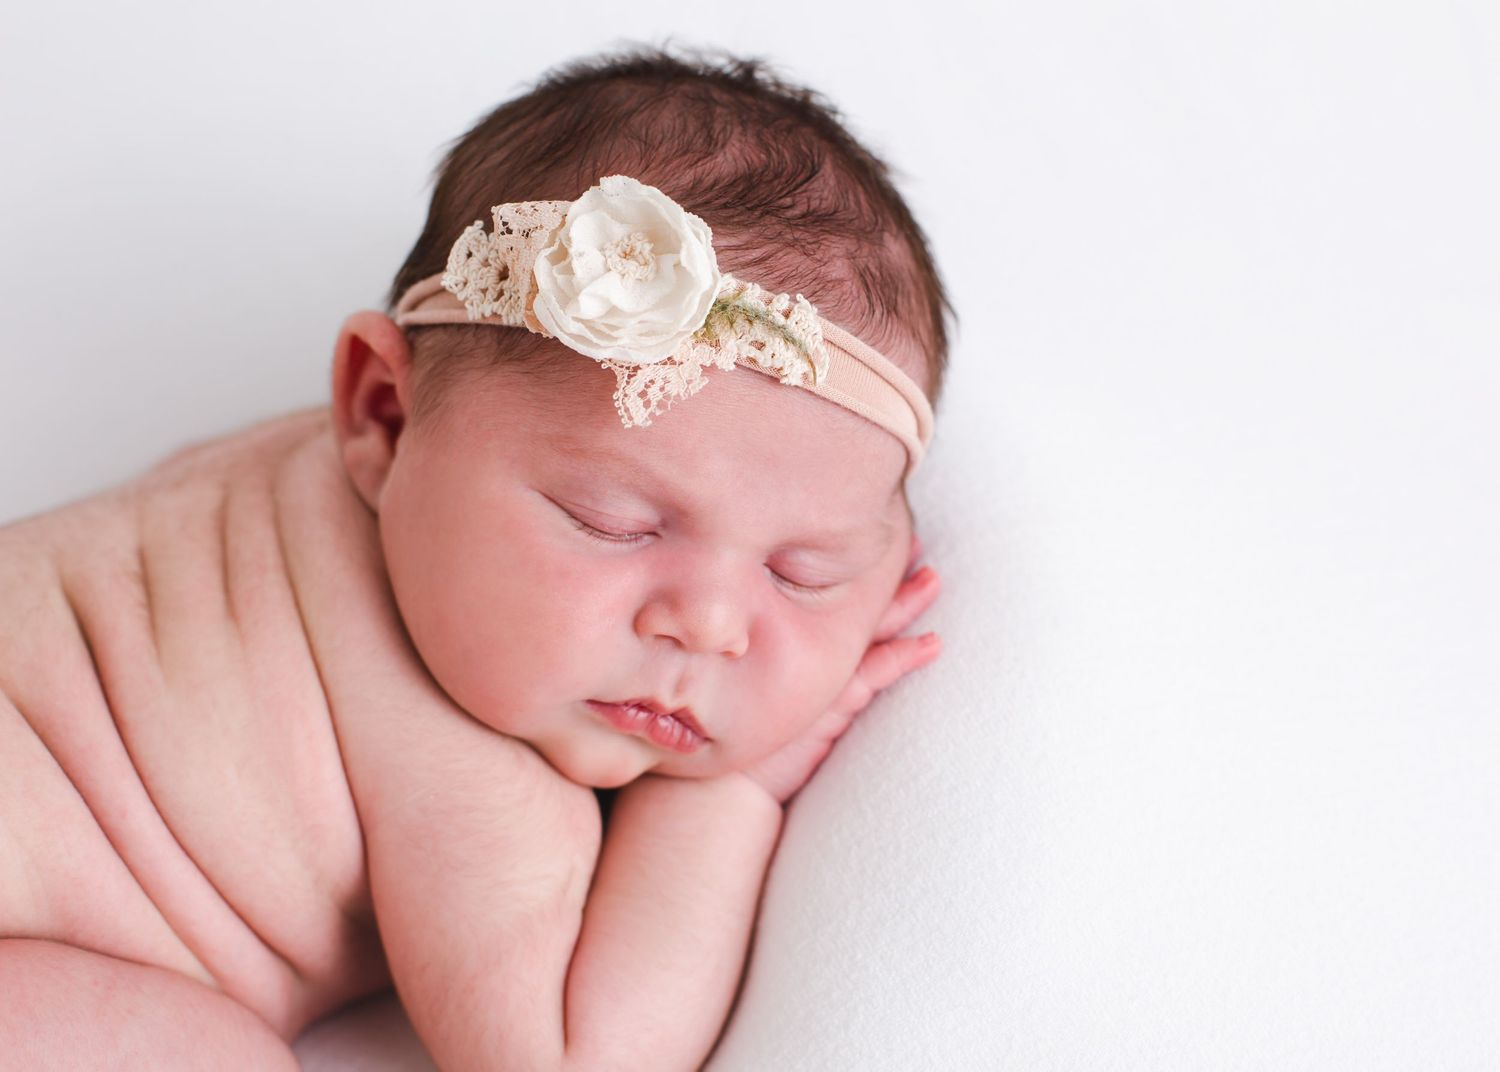 nebworn posed on baby blanket with headband - penticton bc newborn photography